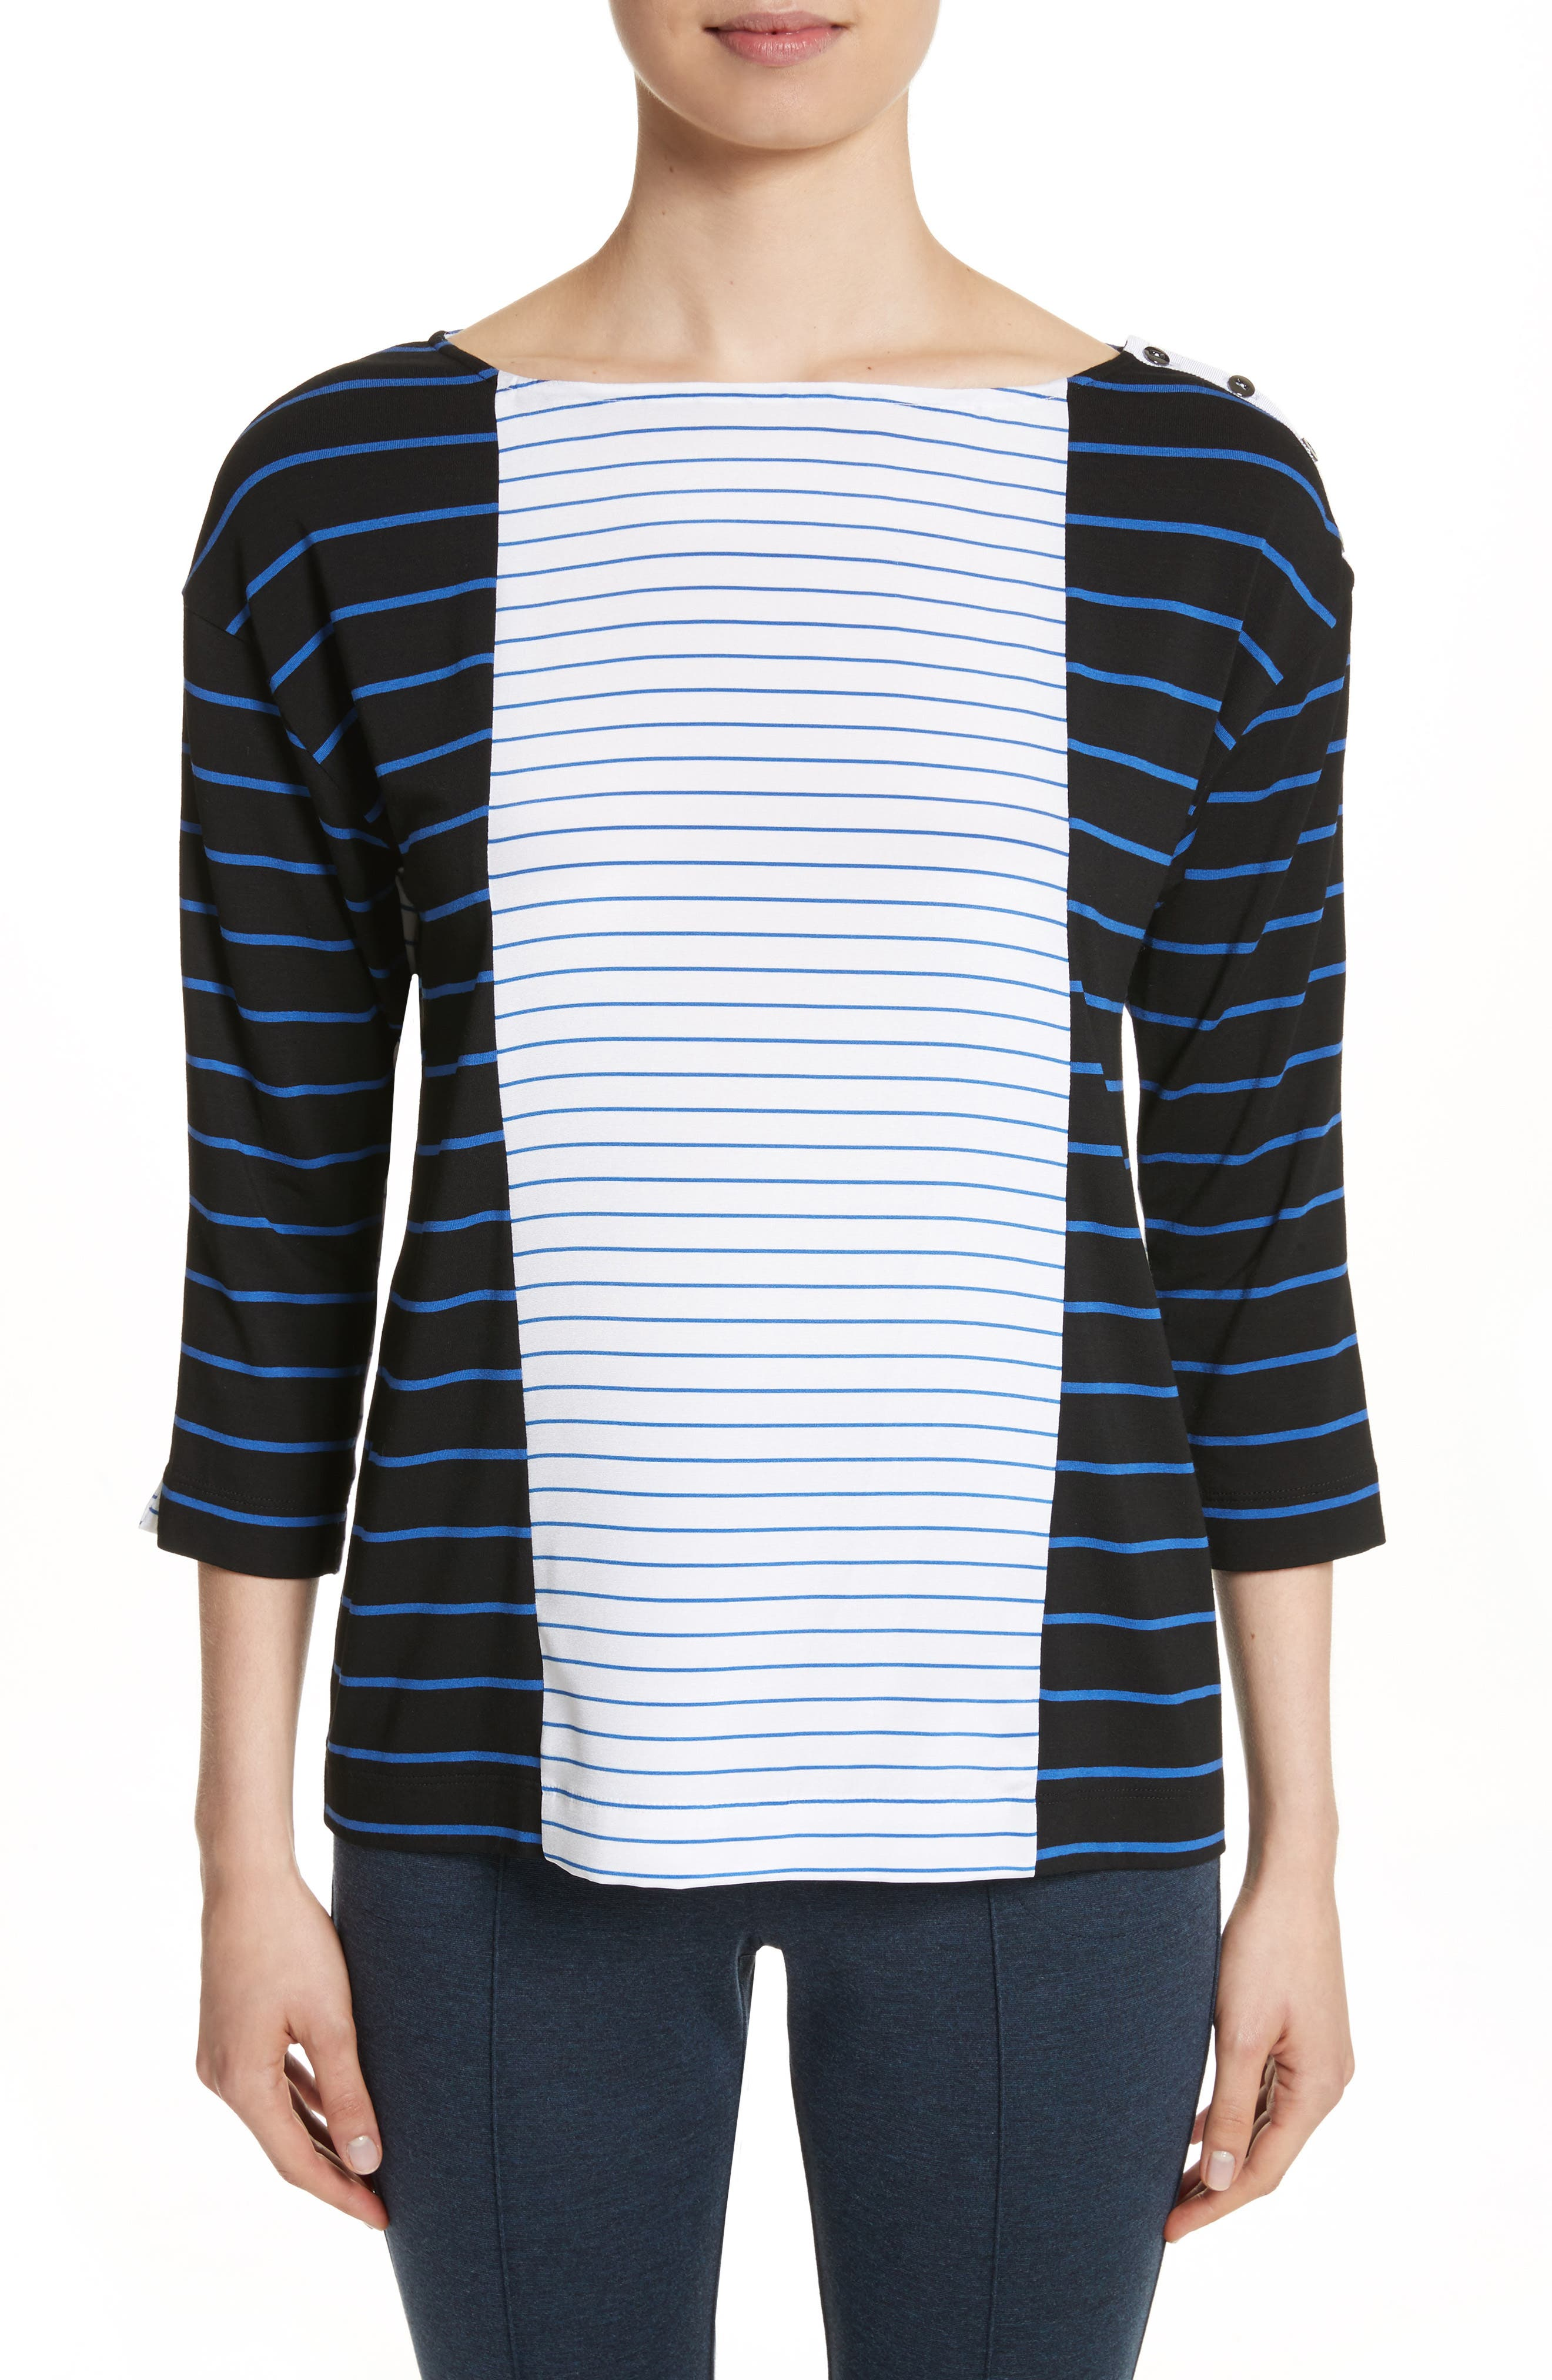 Alternate Image 1 Selected - St. John Collection Yarn Dyed Stripe Jersey Top